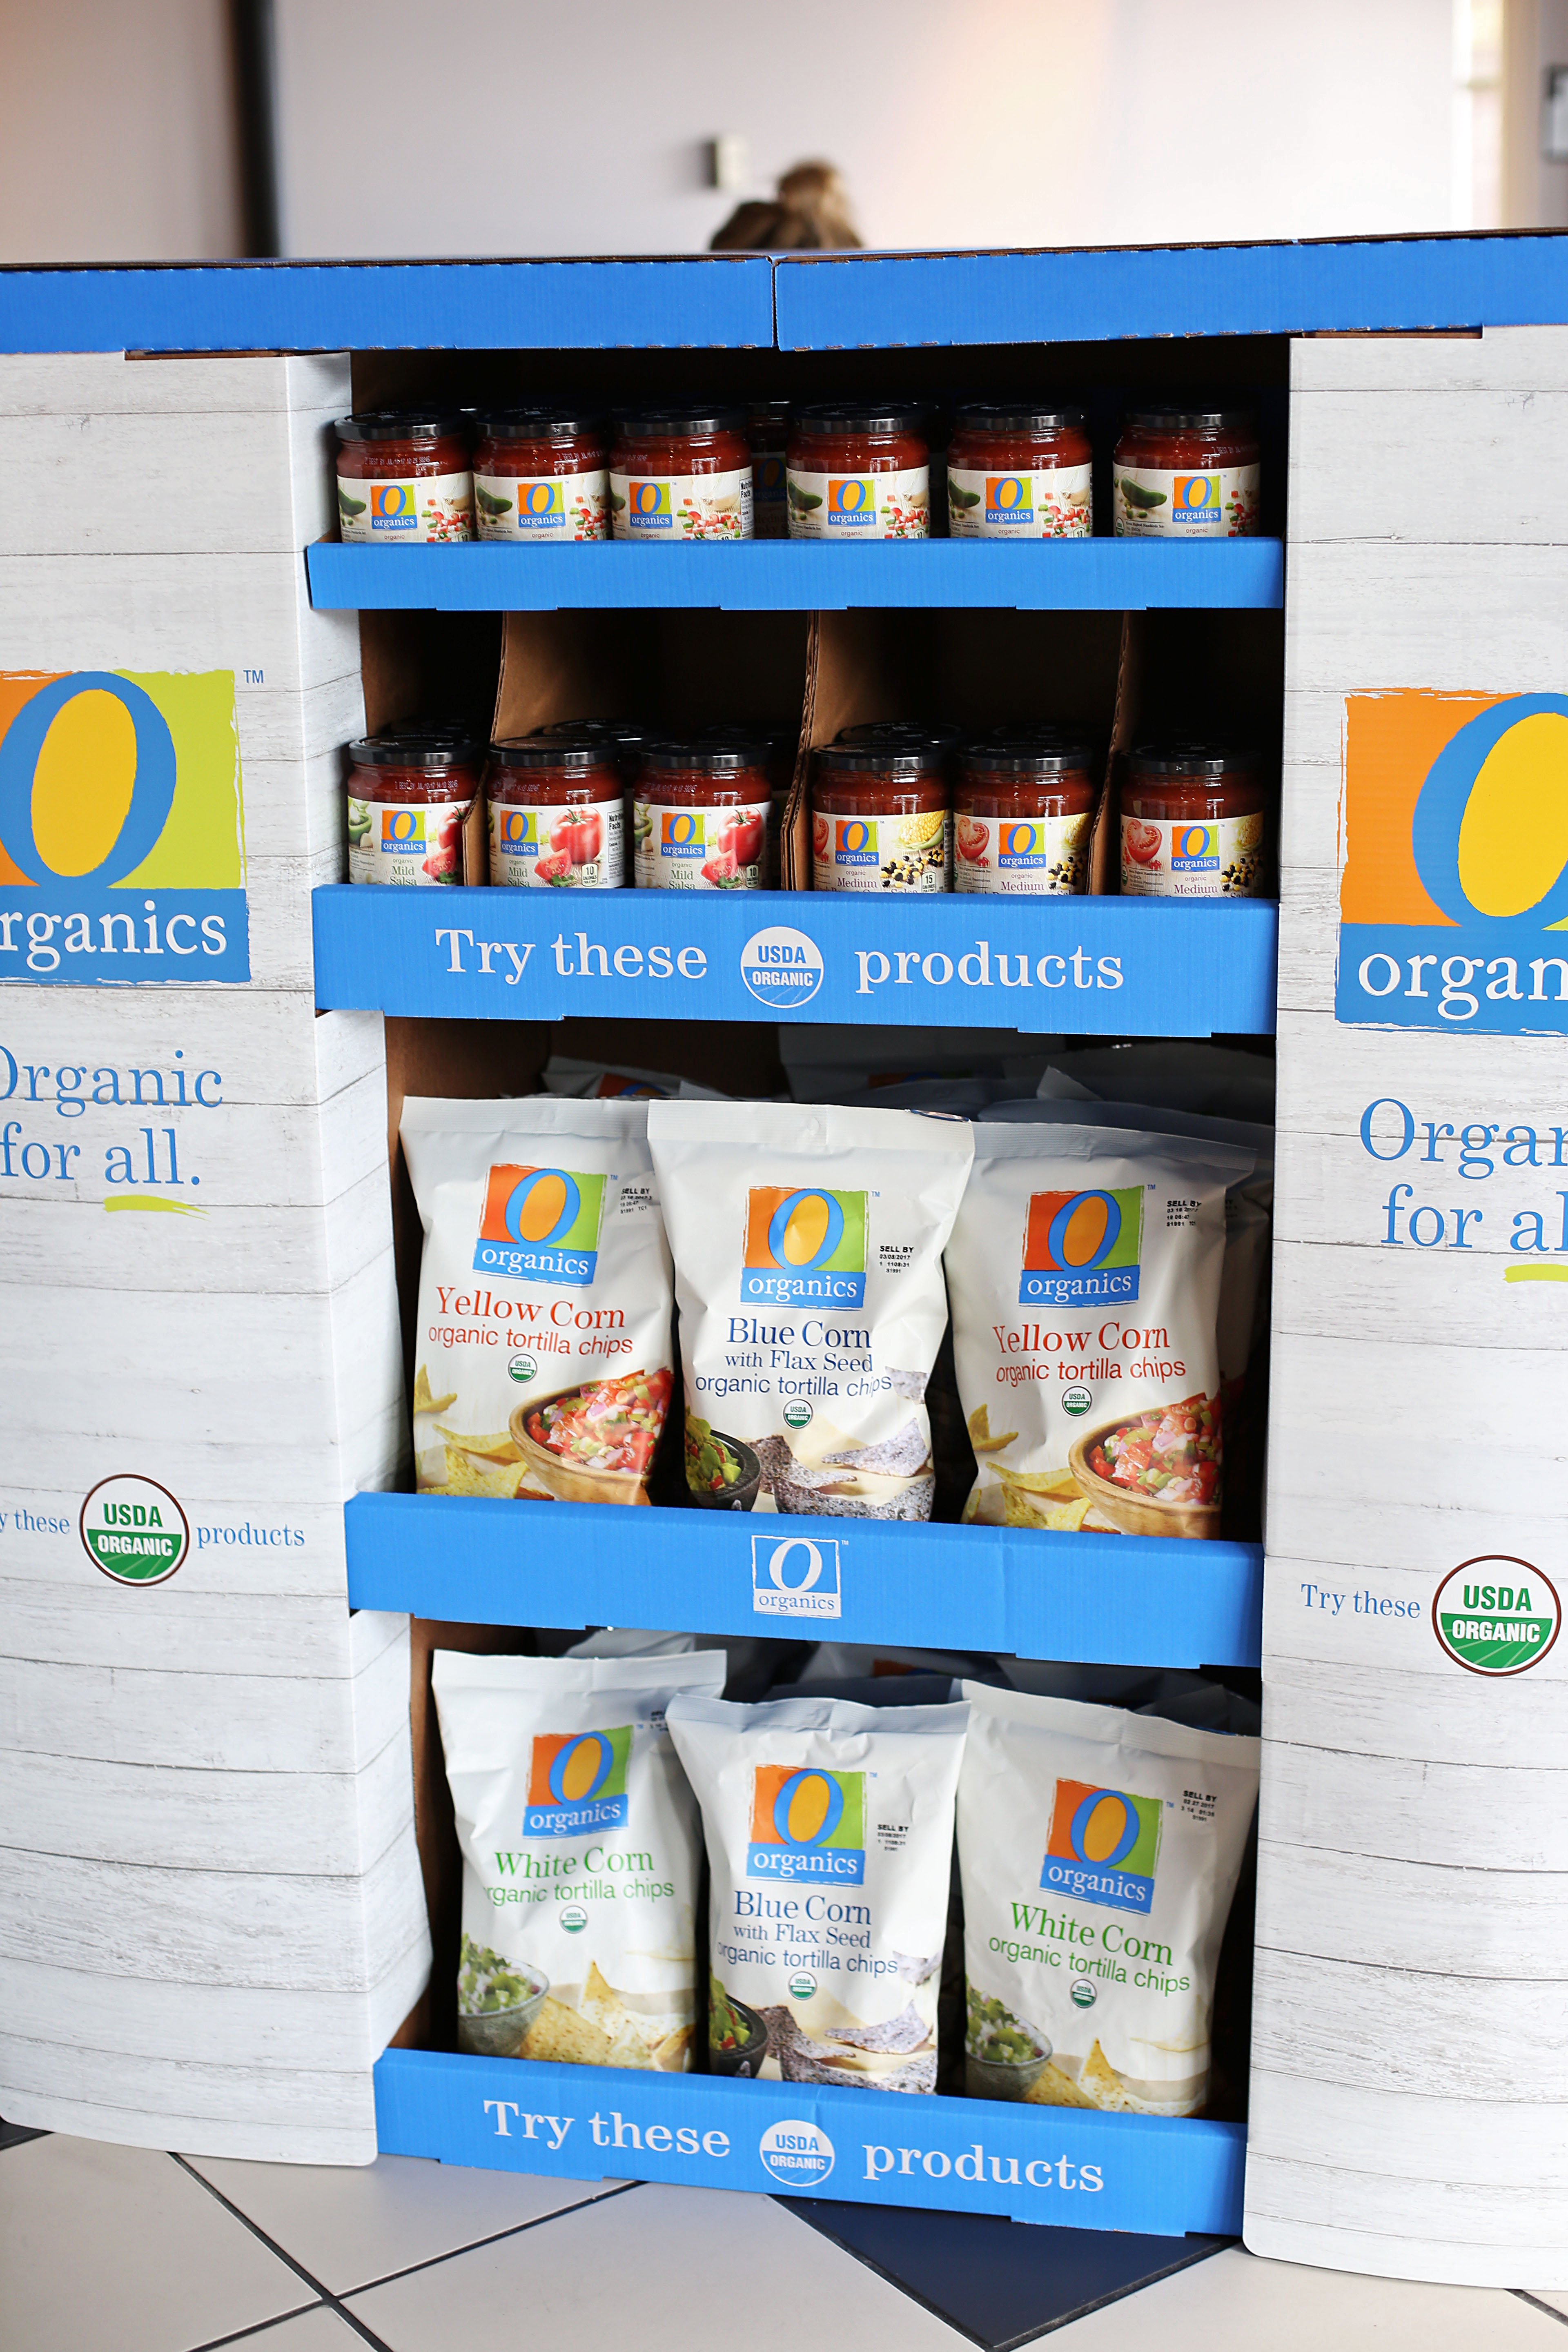 Safeway's Organic for All Event